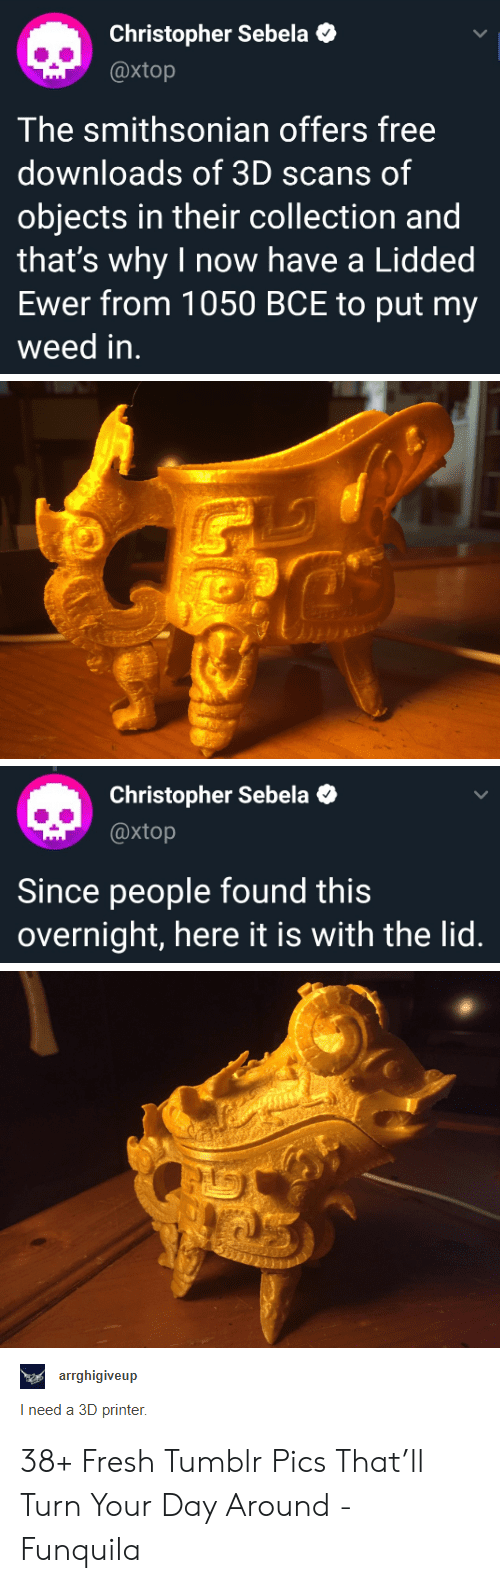 overnight: Christopher Sebela  @xtop  The smithsonian offers free  downloads of 3D scans of  objects in their collection and  that's why I now have a Lidded  Ewer from 1050 BCE to put my  weed in.  Christopher Sebela  @xtop  Since people found this  overnight, here it is with the lid.  aearrghigiveup  I need a 3D printer 38+ Fresh Tumblr Pics That'll Turn Your Day Around - Funquila